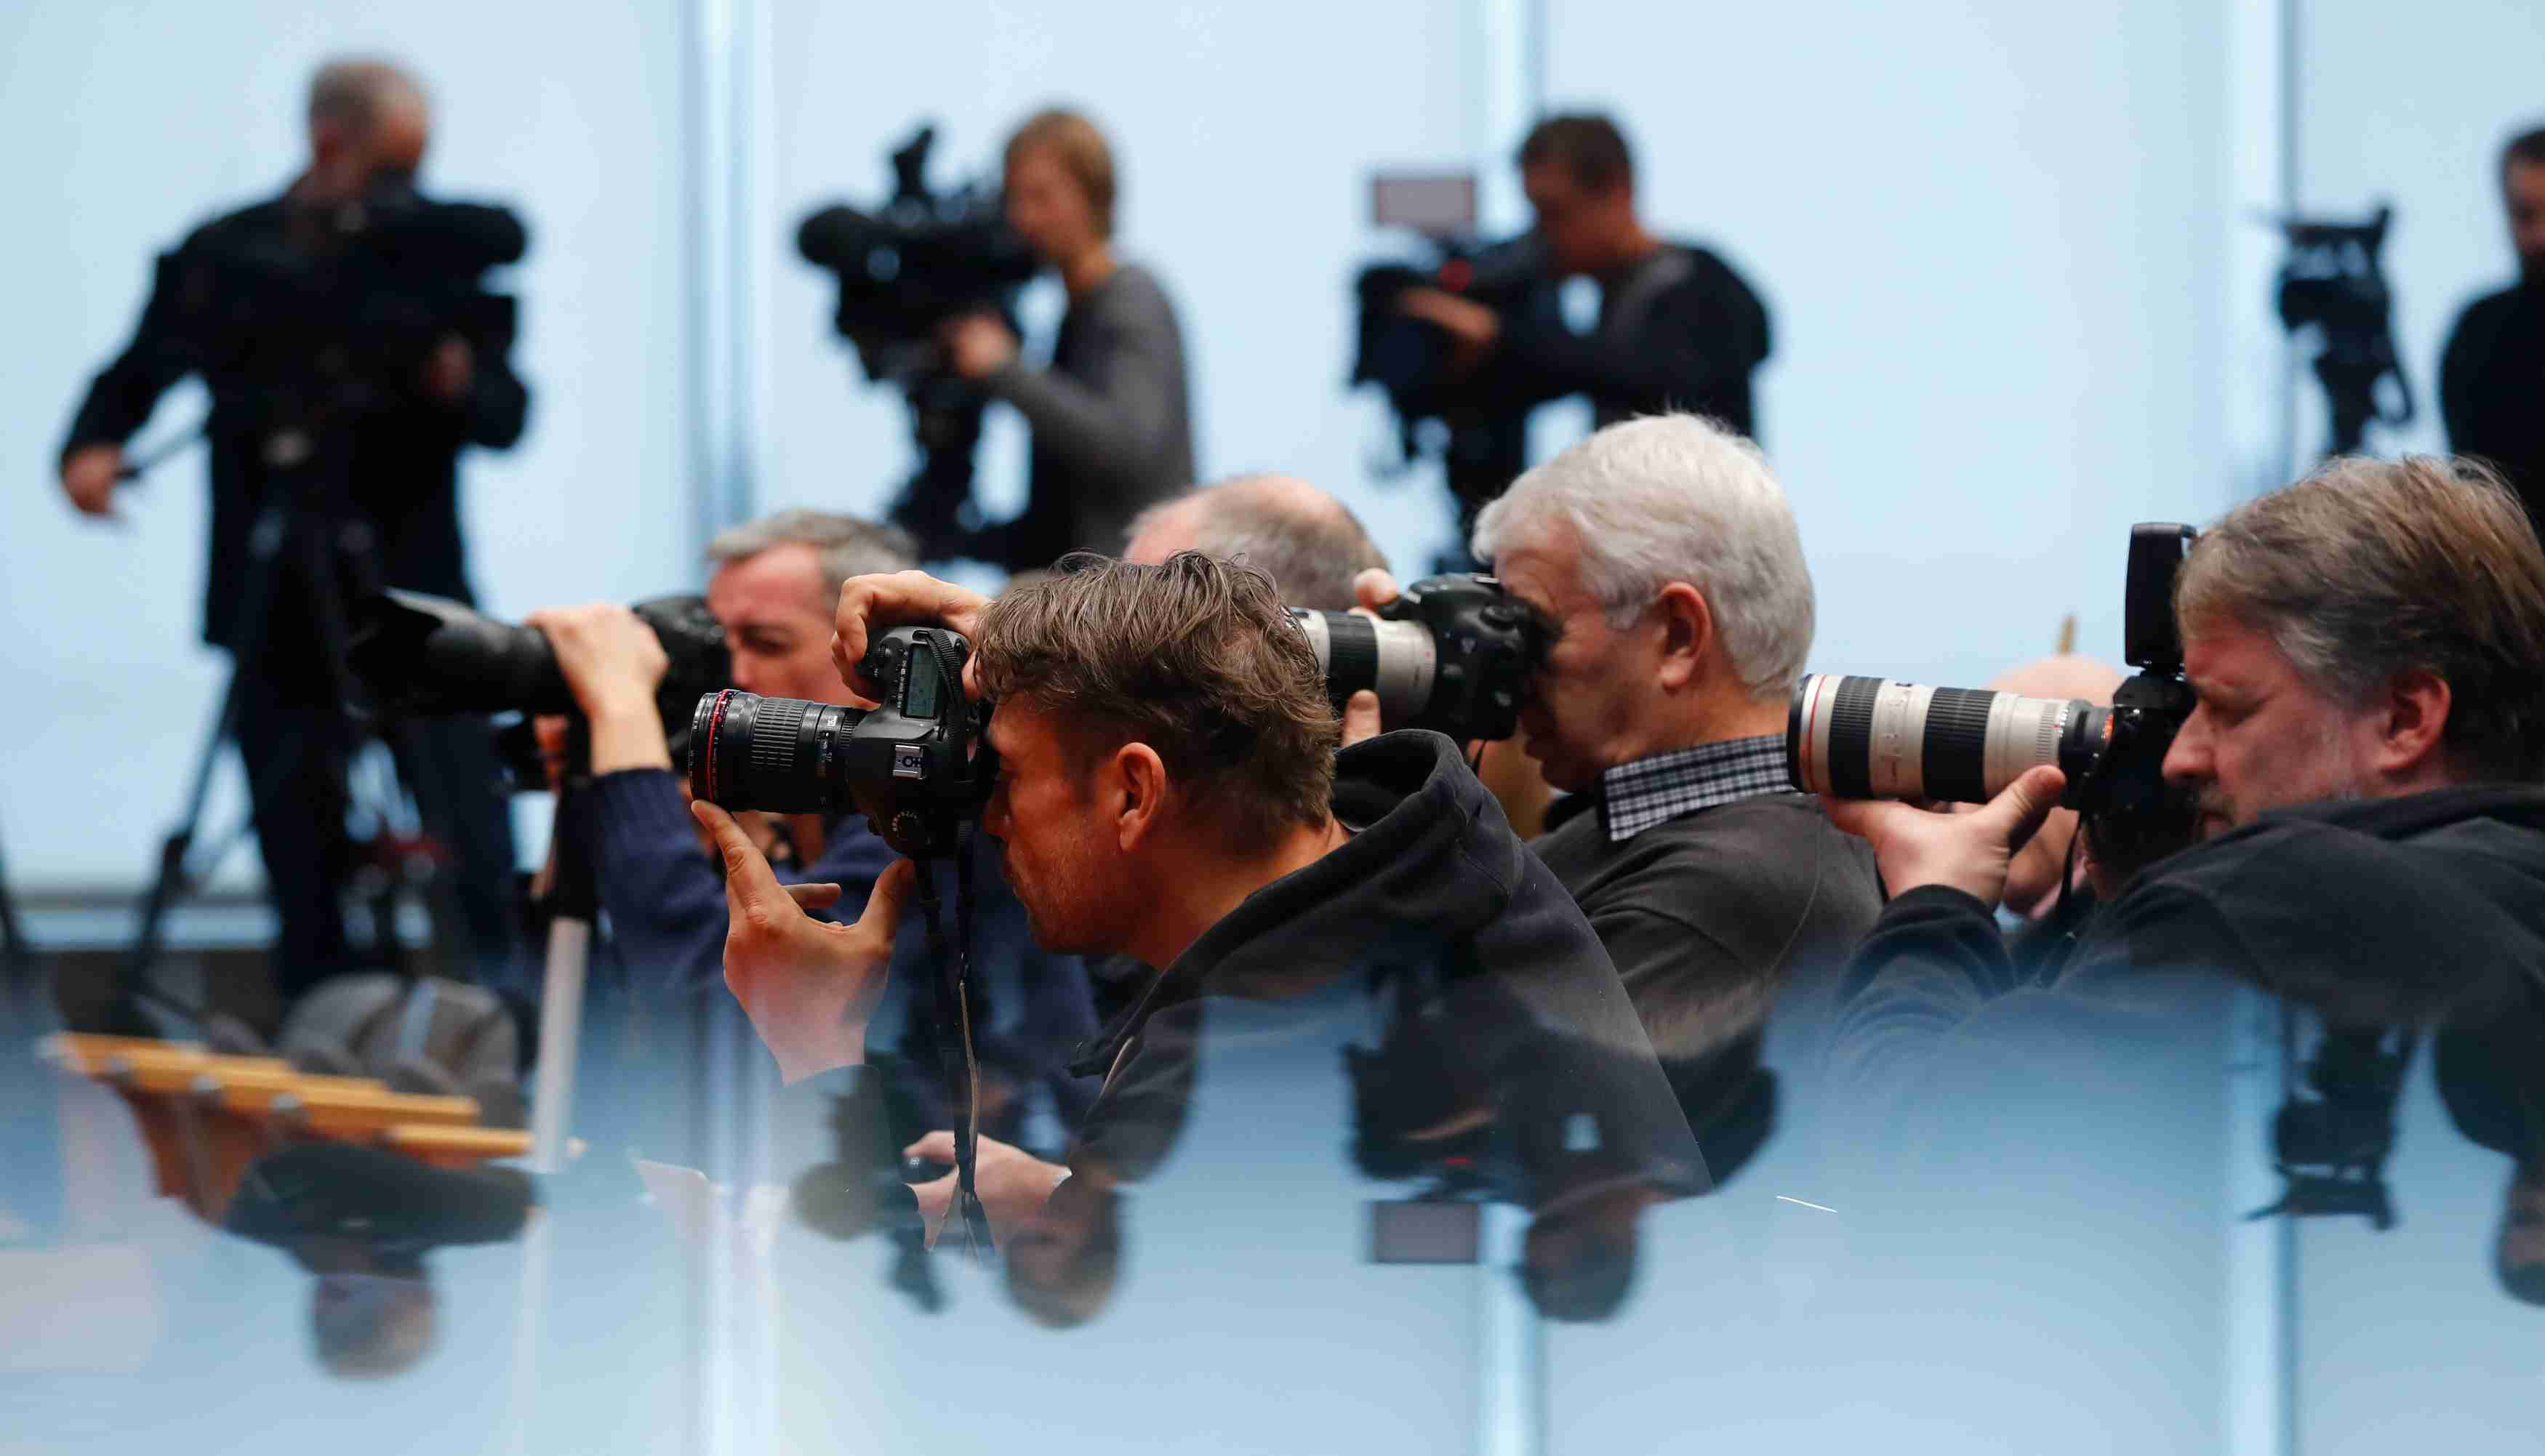 Journalists take pictures during a news conference